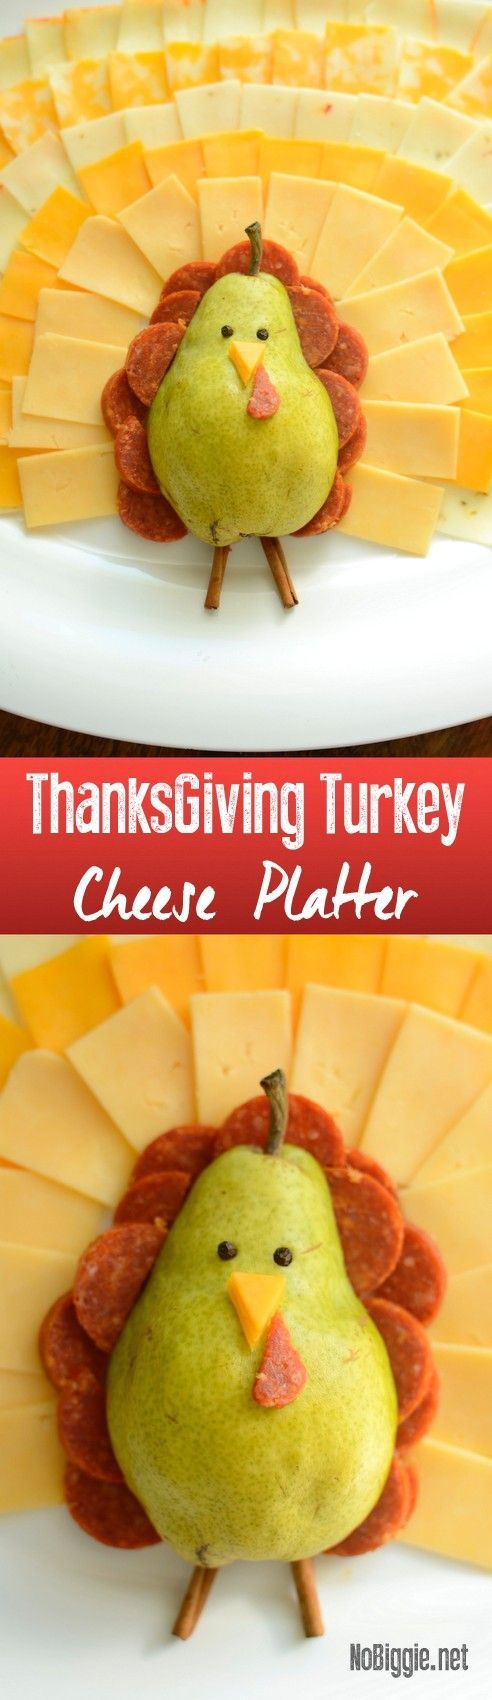 Turkey Cheese platter | NoBiggie.net                                                                                                                                                                                 More